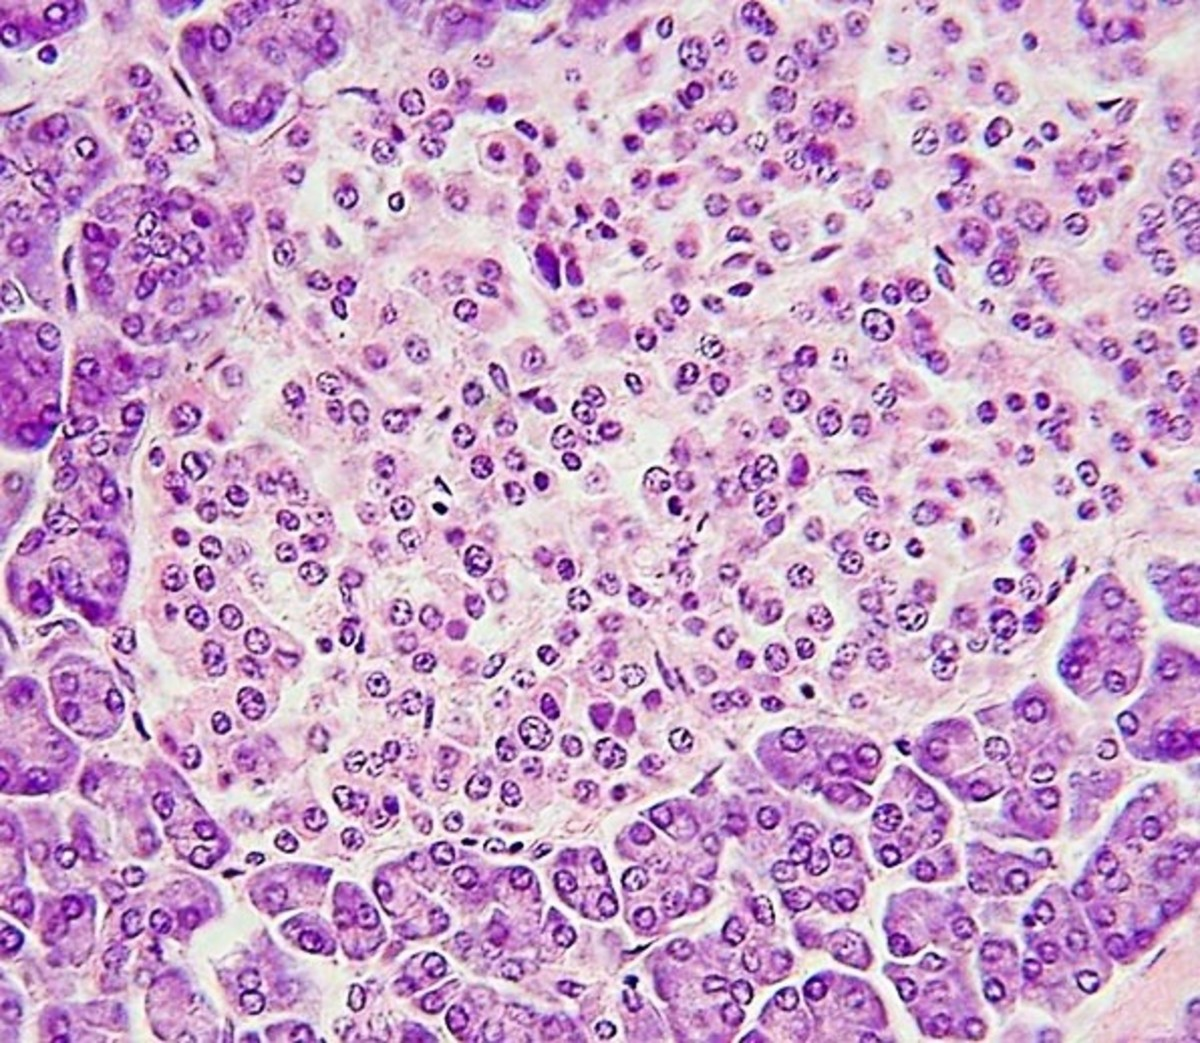 A pancreatic islet (lighter stain) surrounded by acini (darker stain)